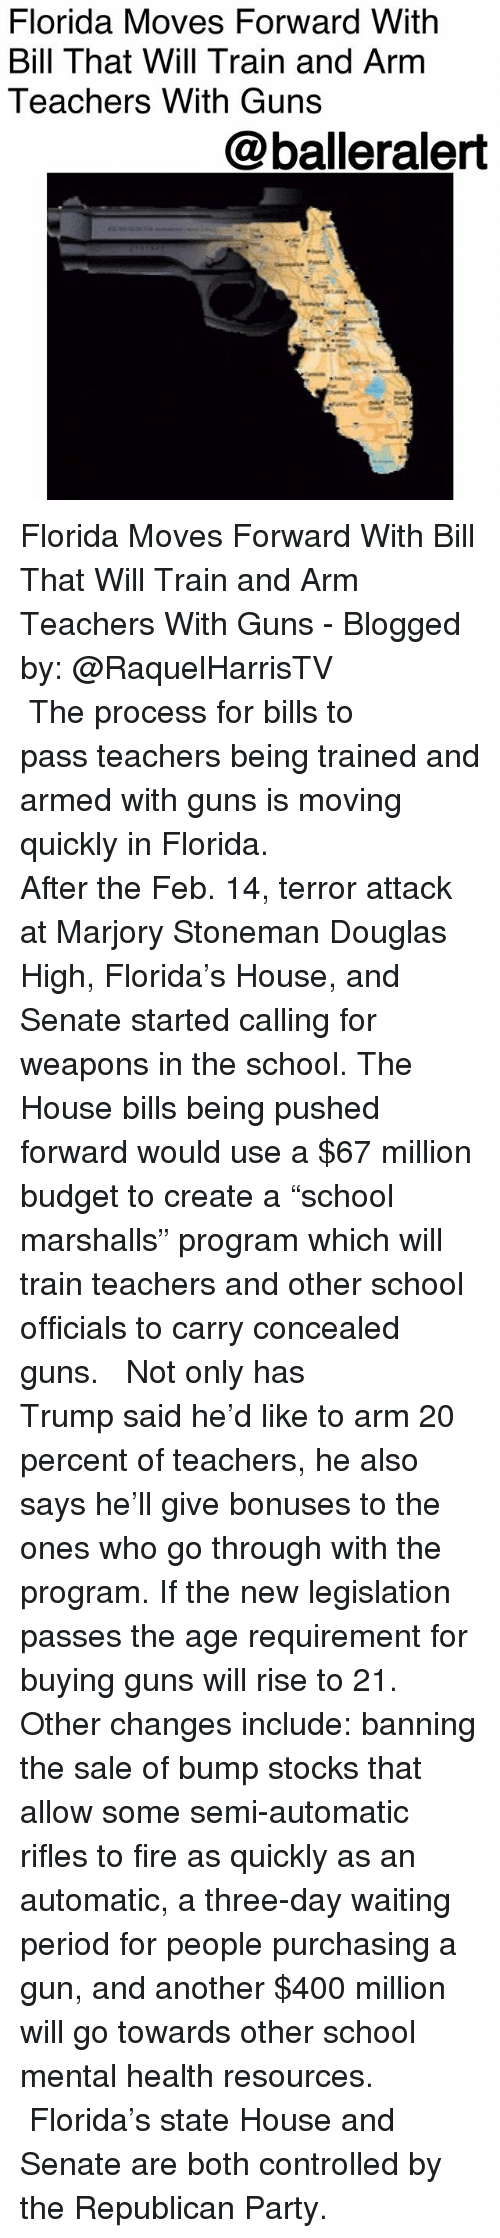 """Fire, Guns, and Memes: Florida Moves Forward With  Bill That Will Train and Arm  Teachers With Guns  @balleralert Florida Moves Forward With Bill That Will Train and Arm Teachers With Guns - Blogged by: @RaquelHarrisTV ⠀⠀⠀⠀⠀⠀⠀⠀⠀ ⠀⠀⠀⠀⠀⠀⠀⠀⠀ The process for bills to pass teachers being trained and armed with guns is moving quickly in Florida. ⠀⠀⠀⠀⠀⠀⠀⠀⠀ ⠀⠀⠀⠀⠀⠀⠀⠀⠀ After the Feb. 14, terror attack at Marjory Stoneman Douglas High, Florida's House, and Senate started calling for weapons in the school. The House bills being pushed forward would use a $67 million budget to create a """"school marshalls"""" program which will train teachers and other school officials to carry concealed guns. ⠀⠀⠀⠀⠀⠀⠀⠀⠀ ⠀⠀⠀⠀⠀⠀⠀⠀⠀ Not only has Trump said he'd like to arm 20 percent of teachers, he also says he'll give bonuses to the ones who go through with the program. If the new legislation passes the age requirement for buying guns will rise to 21. Other changes include: banning the sale of bump stocks that allow some semi-automatic rifles to fire as quickly as an automatic, a three-day waiting period for people purchasing a gun, and another $400 million will go towards other school mental health resources. ⠀⠀⠀⠀⠀⠀⠀⠀⠀ ⠀⠀⠀⠀⠀⠀⠀⠀⠀ Florida's state House and Senate are both controlled by the Republican Party."""